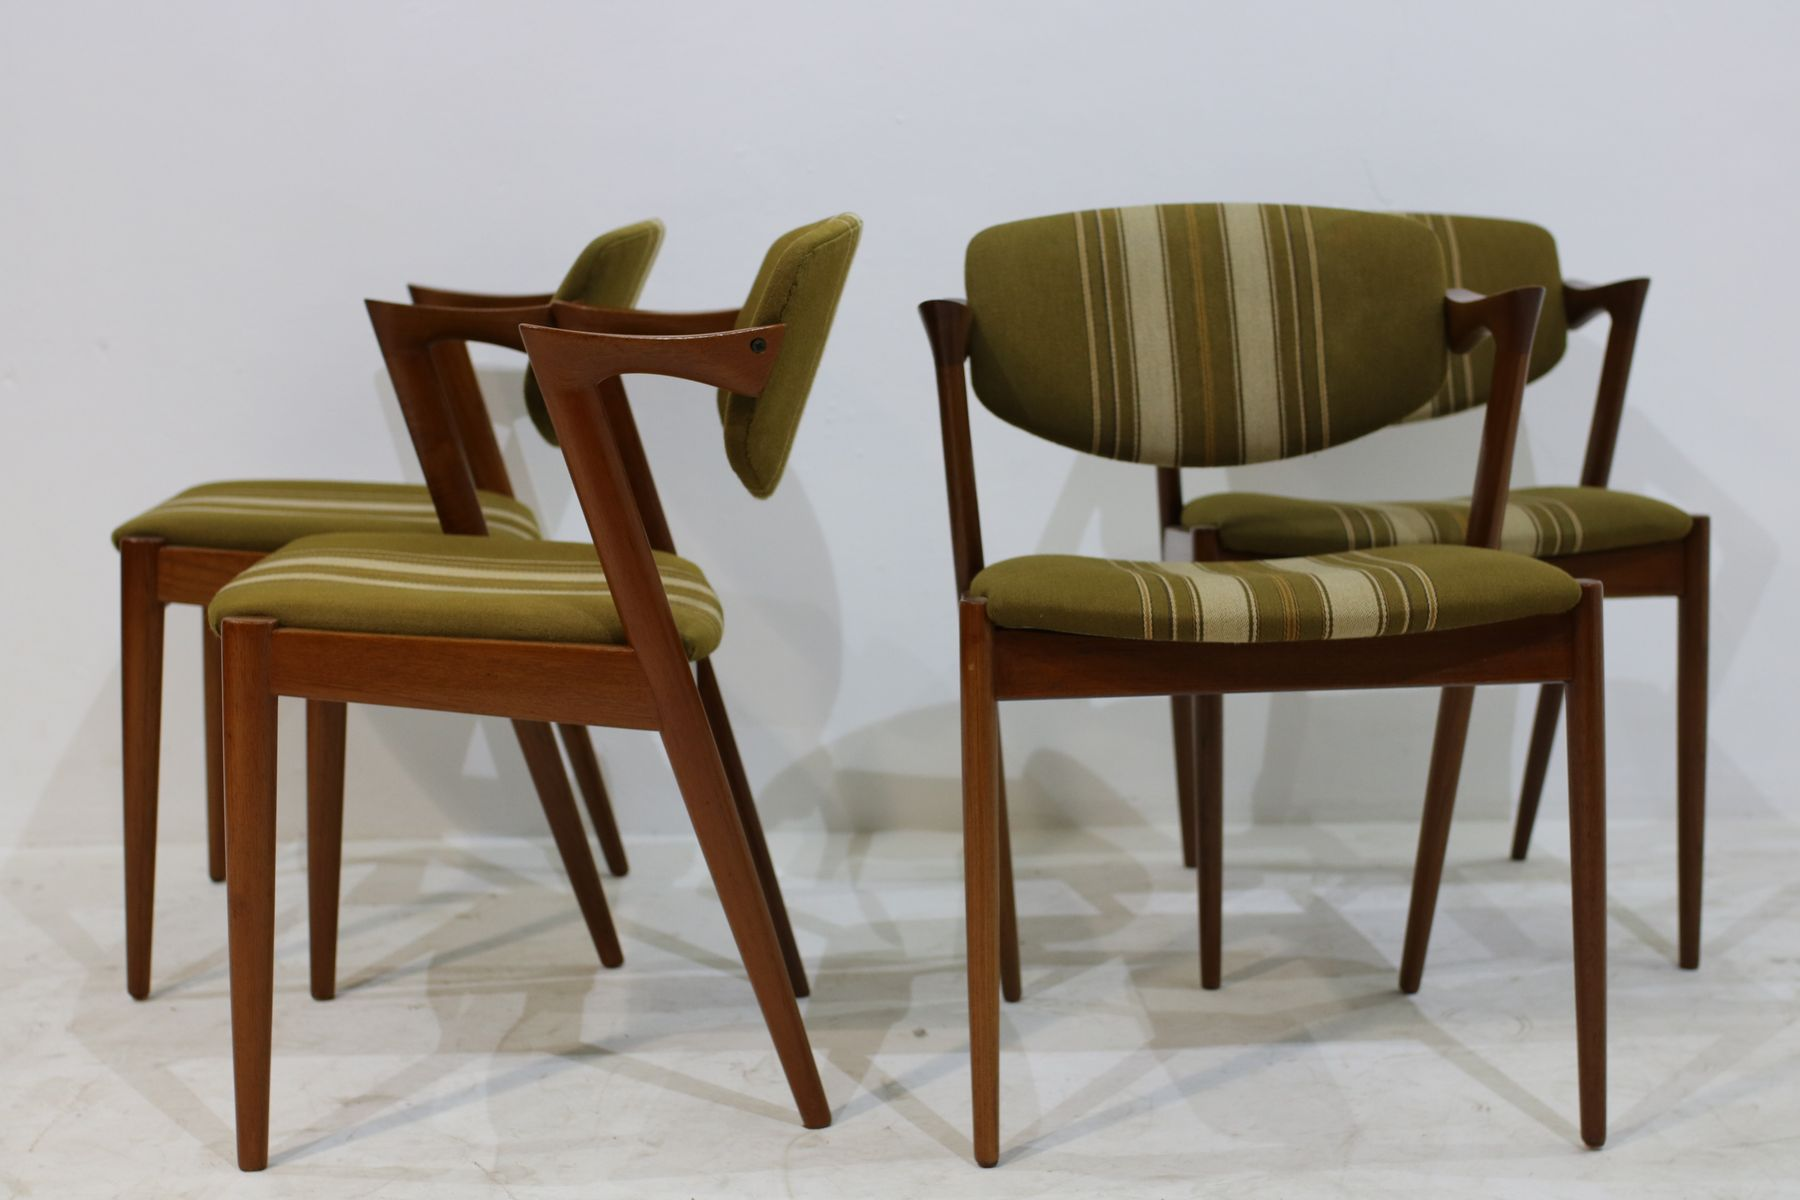 Vintage model 42 chairs by kai kristiansen set of 4 for sale at pamono - Kai kristiansen chairs ...